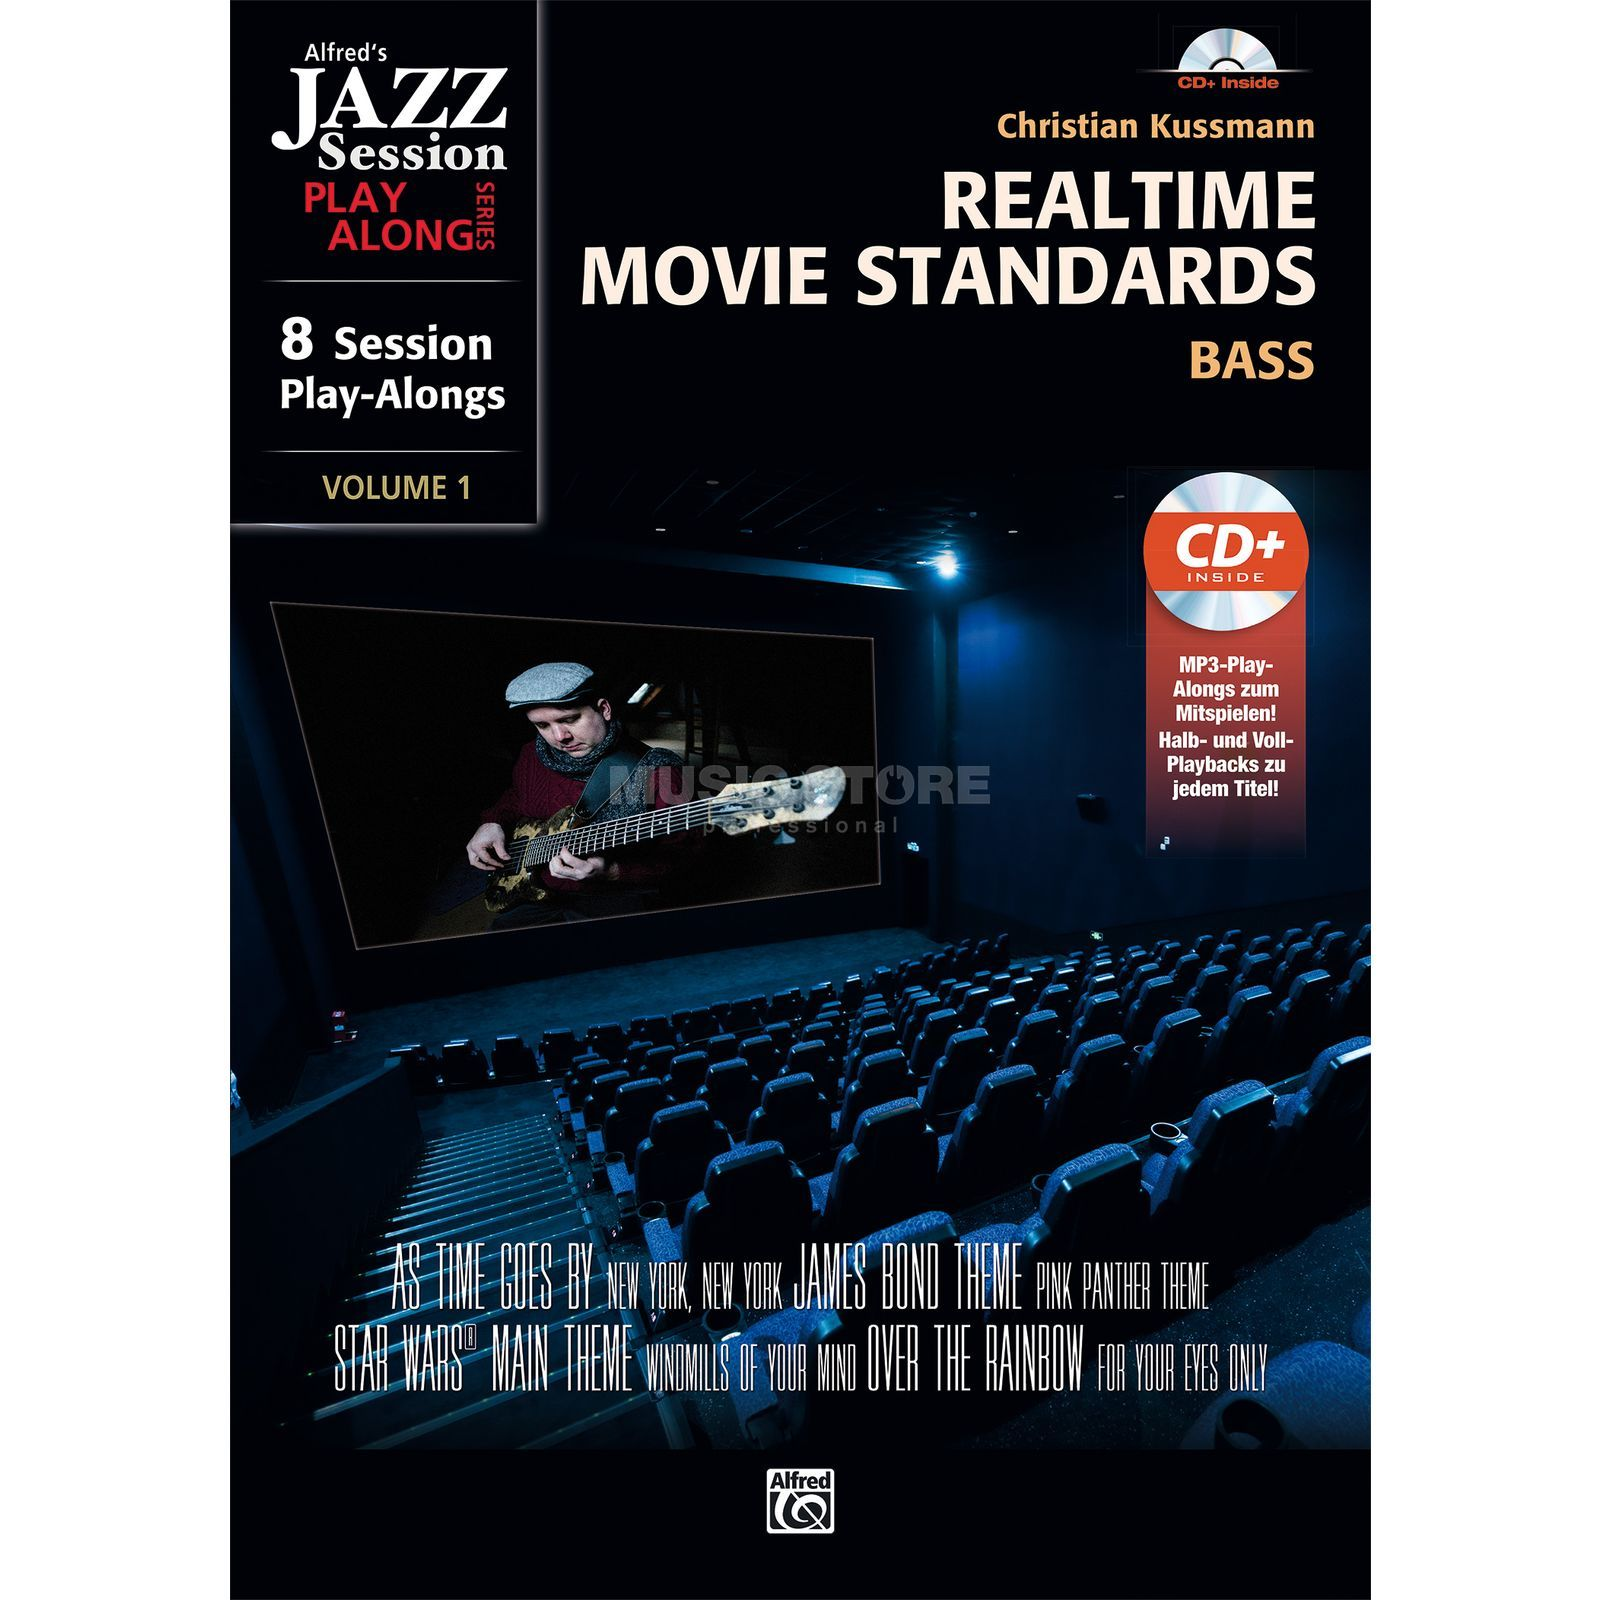 Alfred Music Realtime Movie Standards für Bass Produktbillede